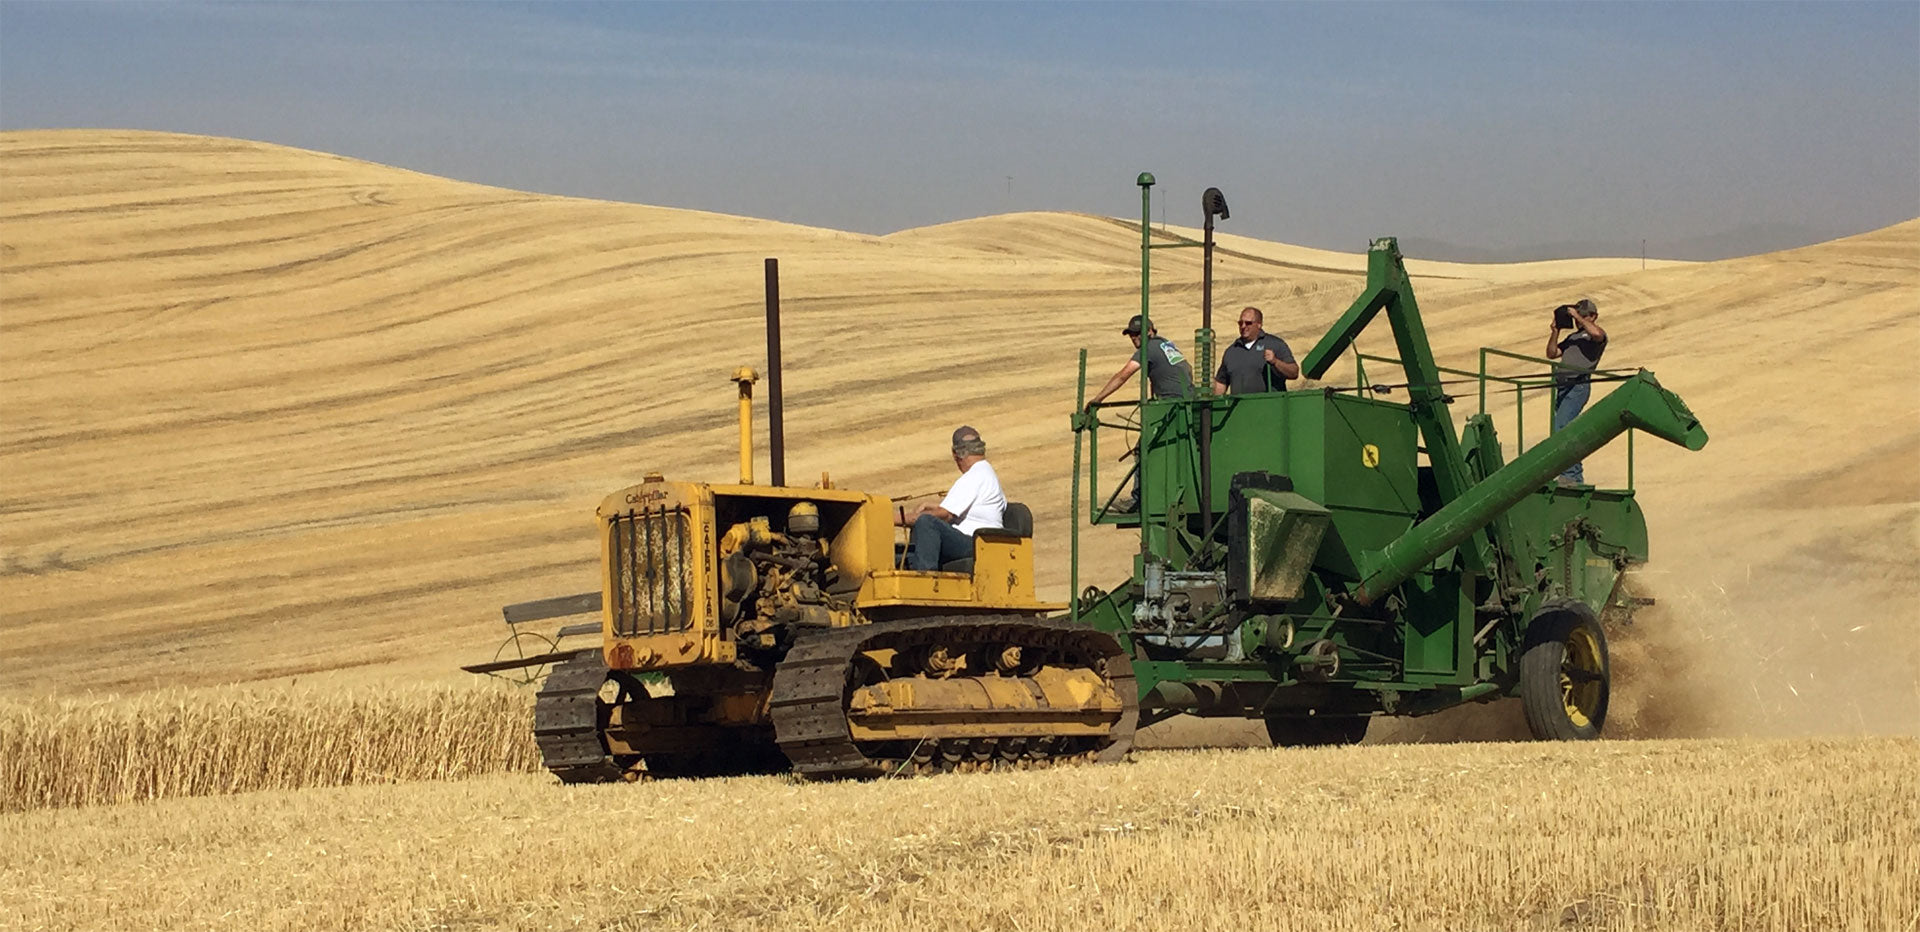 Pull tractor harvesting wheat on the Palouse.